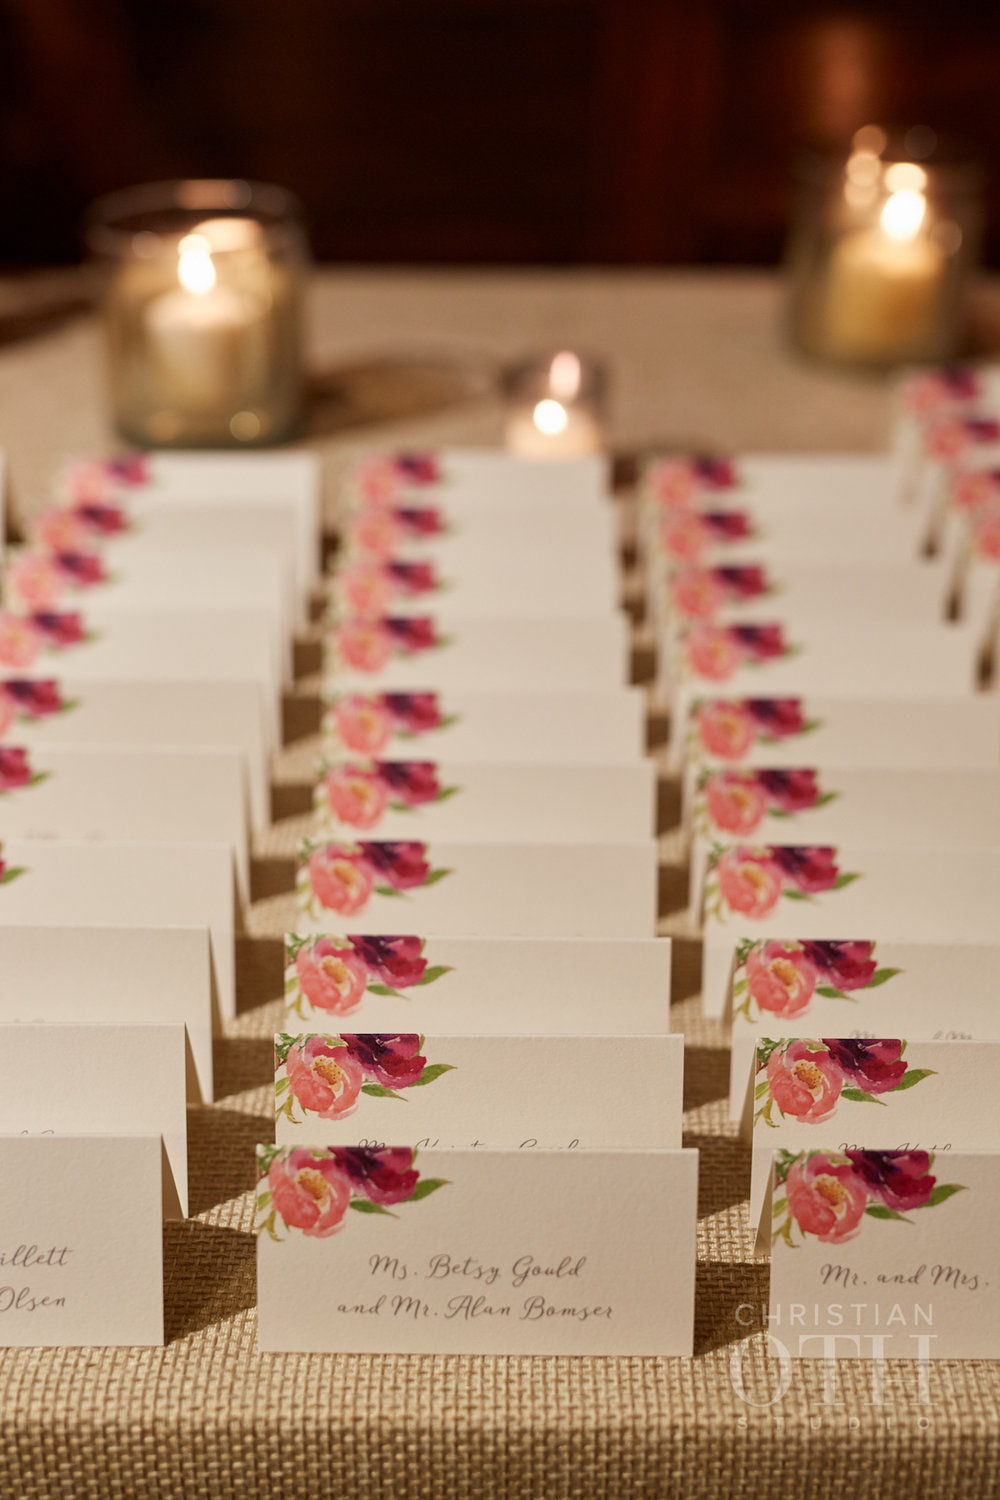 Weylin wedding, Ang Weddings and Events, Christian Oth Studios, Poppies and Posies, Katie Fischer Design escort cards